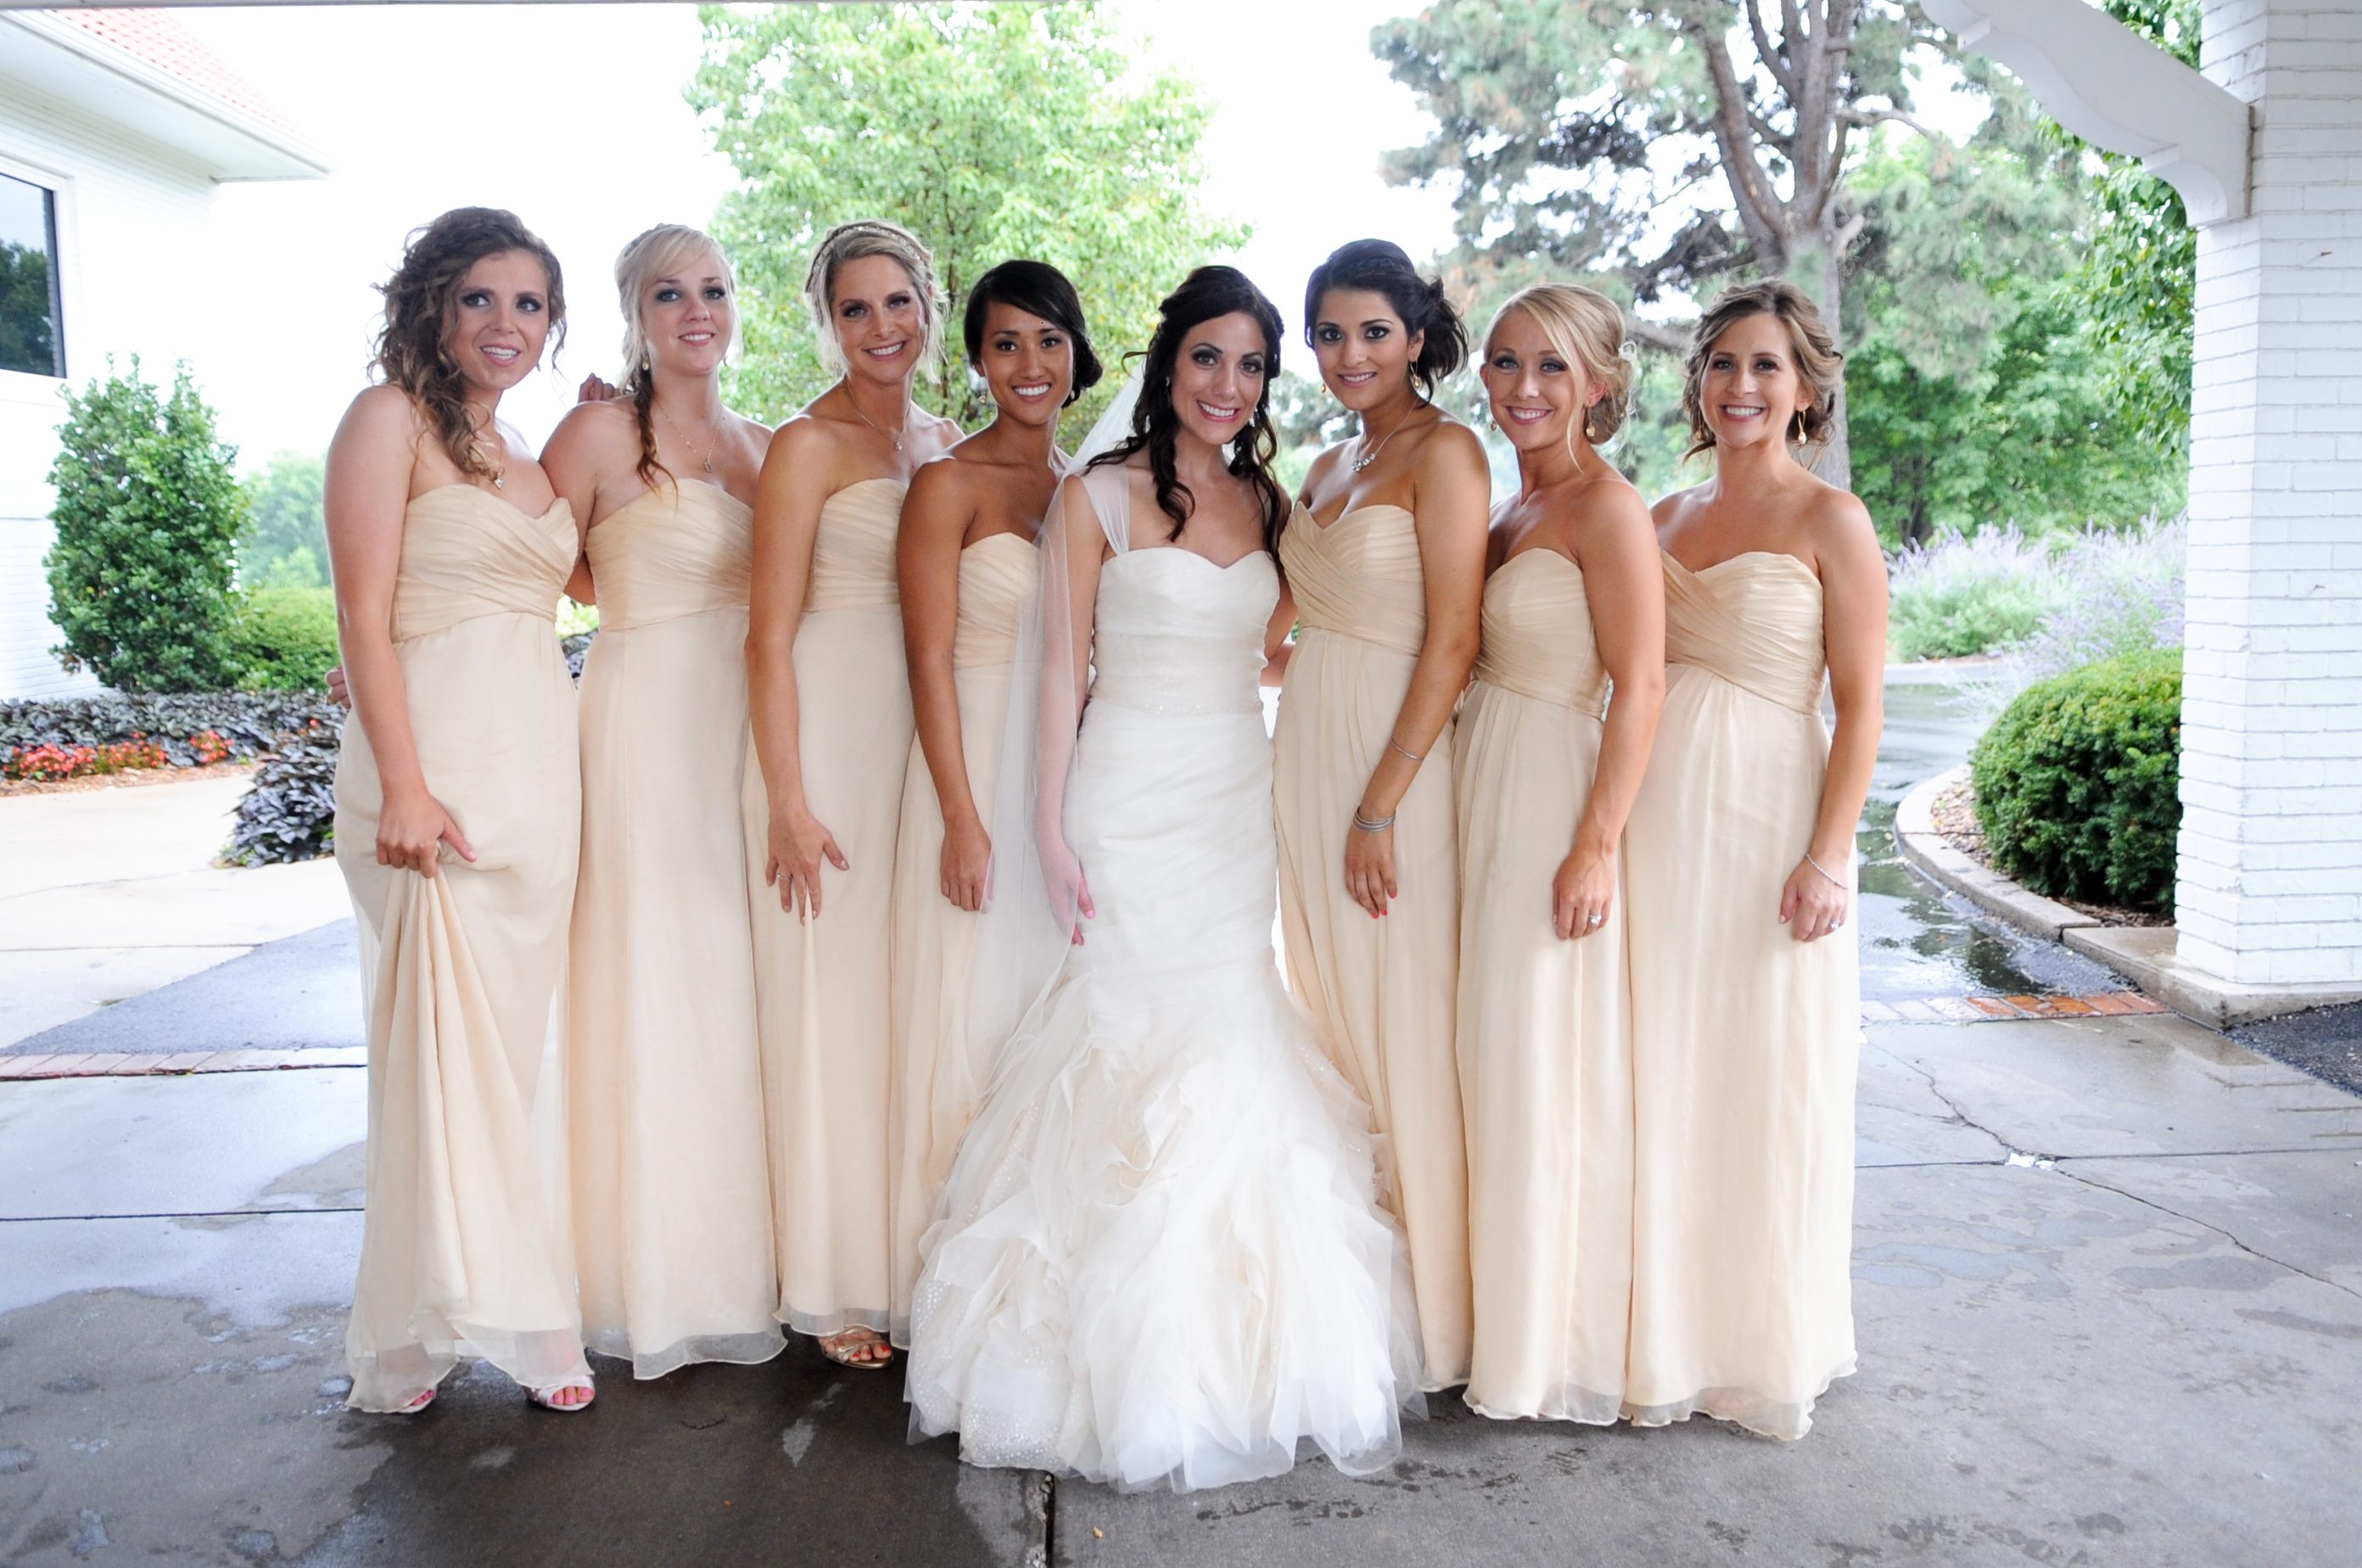 Smartly Ready Or Knot Amsale Dresses Vanilla Ready Or Knot Bridesmaids Murante Ready Or Knot Omaha Bridal Shop Amsale Bridesmaid Dresses Nordstrom Amsale Bridesmaid Dresses Online wedding dress Amsale Bridesmaid Dresses